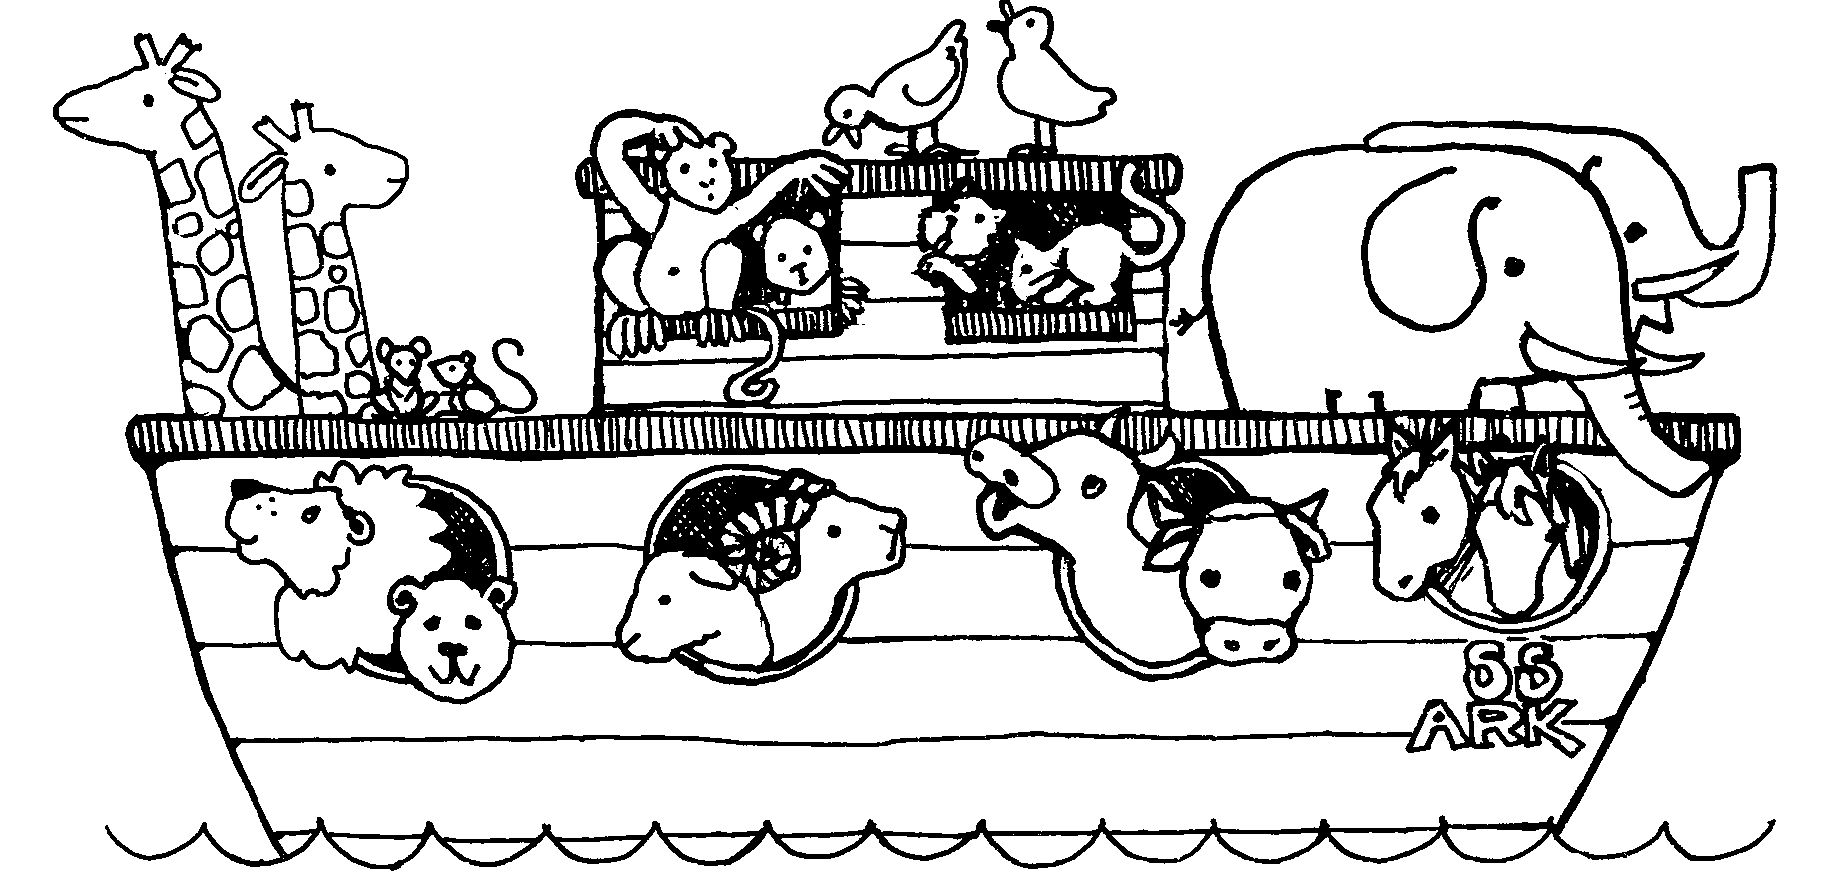 noah ark coloring pages free noah's ark coloring pages | Posts related to Noah Ark  noah ark coloring pages